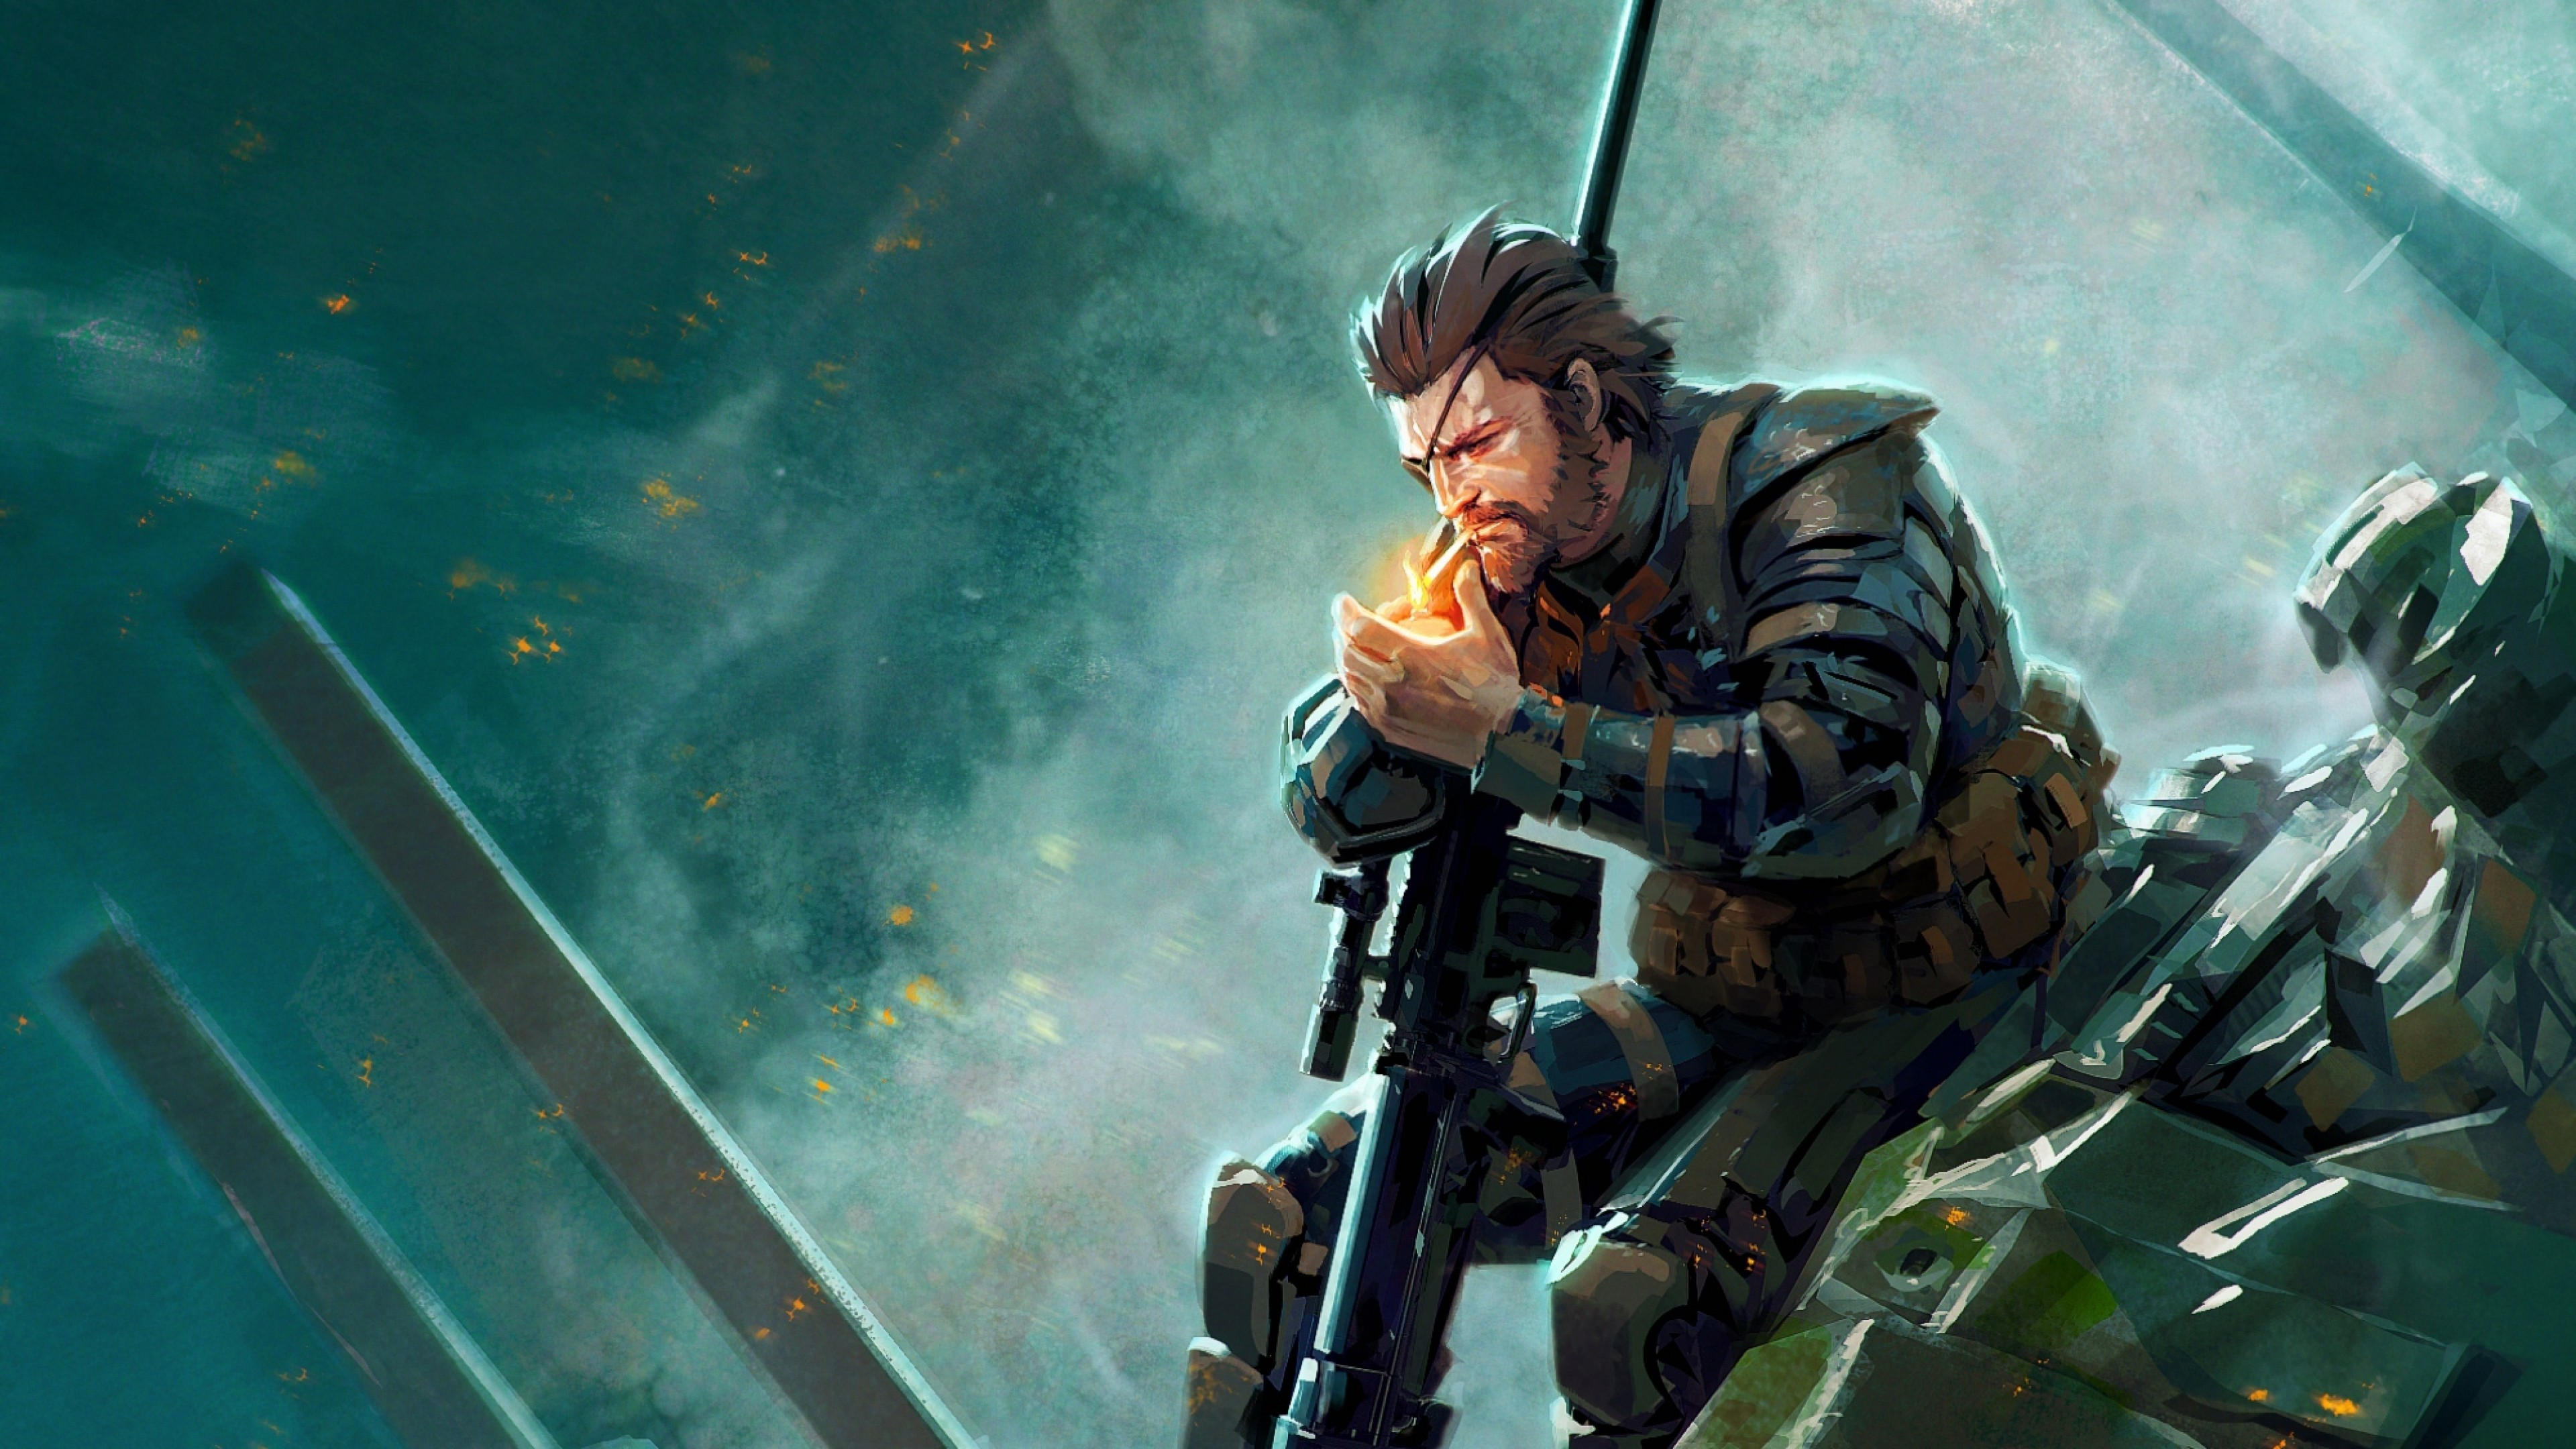 3840x2160 Preview wallpaper hideo kozhim, metal gear solid v, tae phantom pine